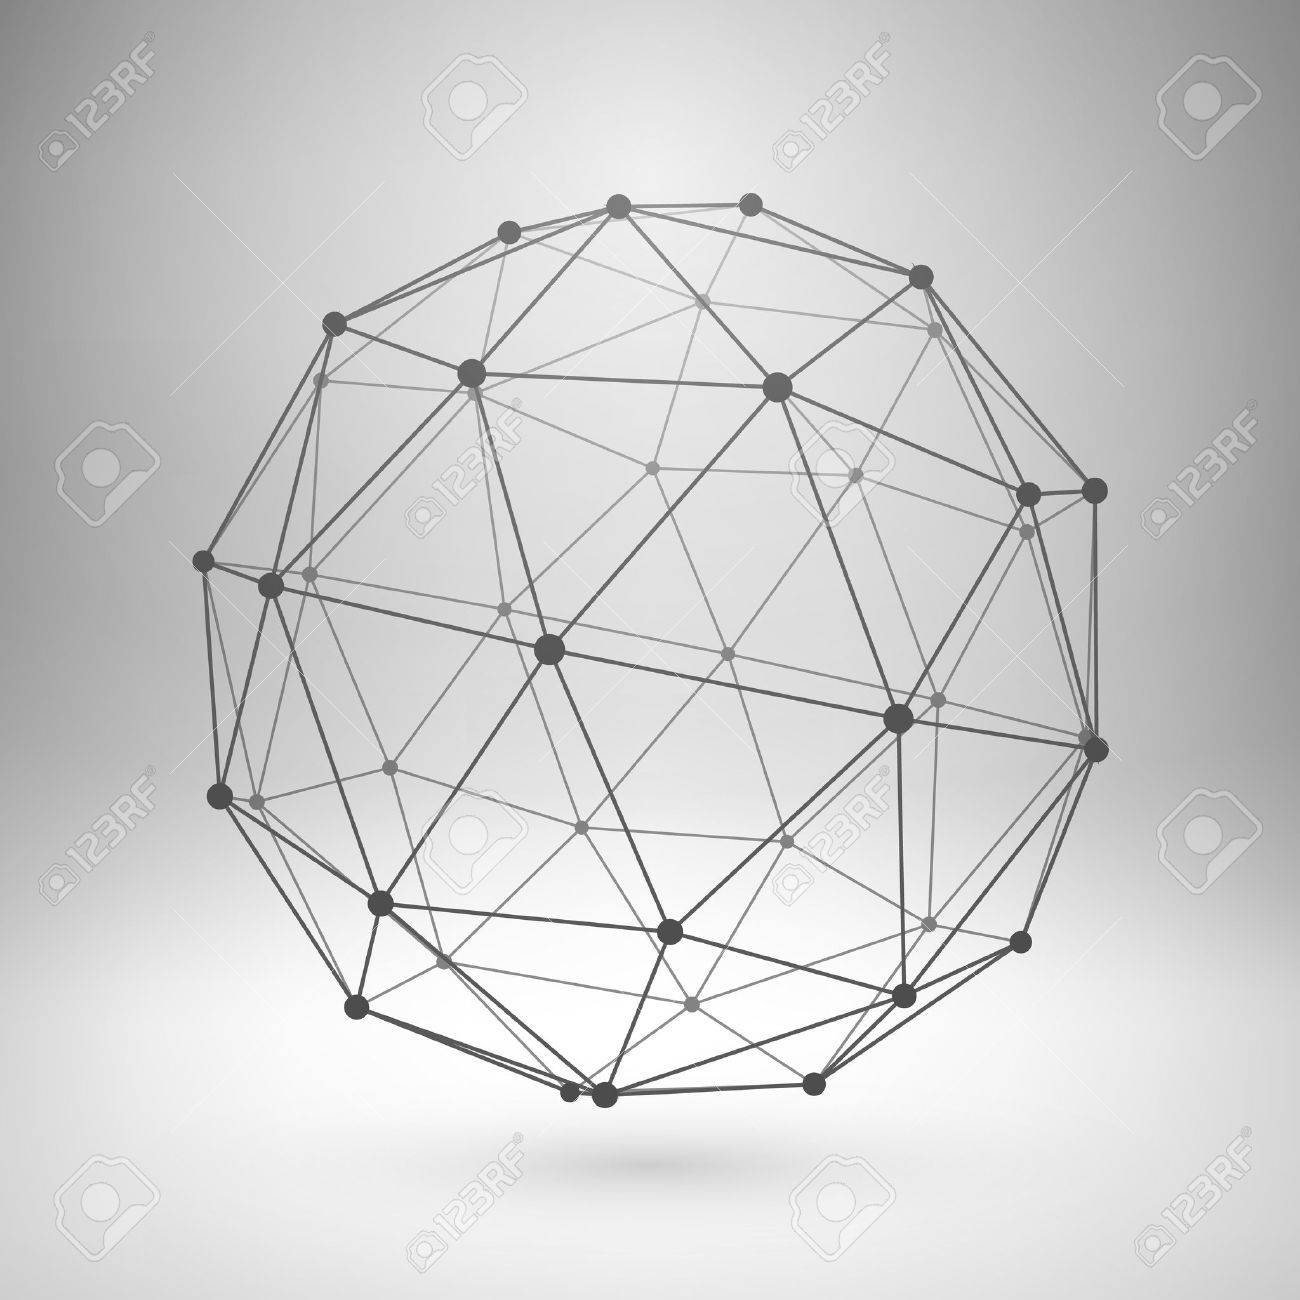 27,734 Wire Mesh Stock Vector Illustration And Royalty Free Wire ...